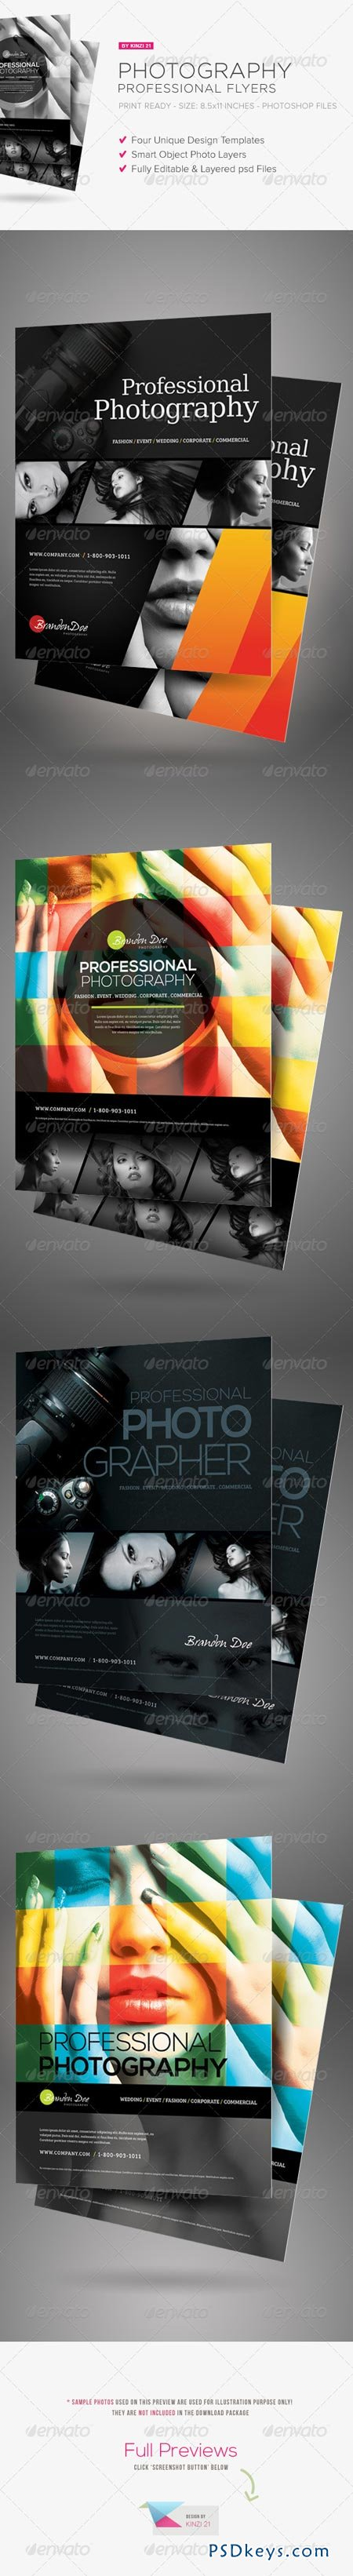 professional photography flyers 3664516 photoshop professional photography flyers 3664516